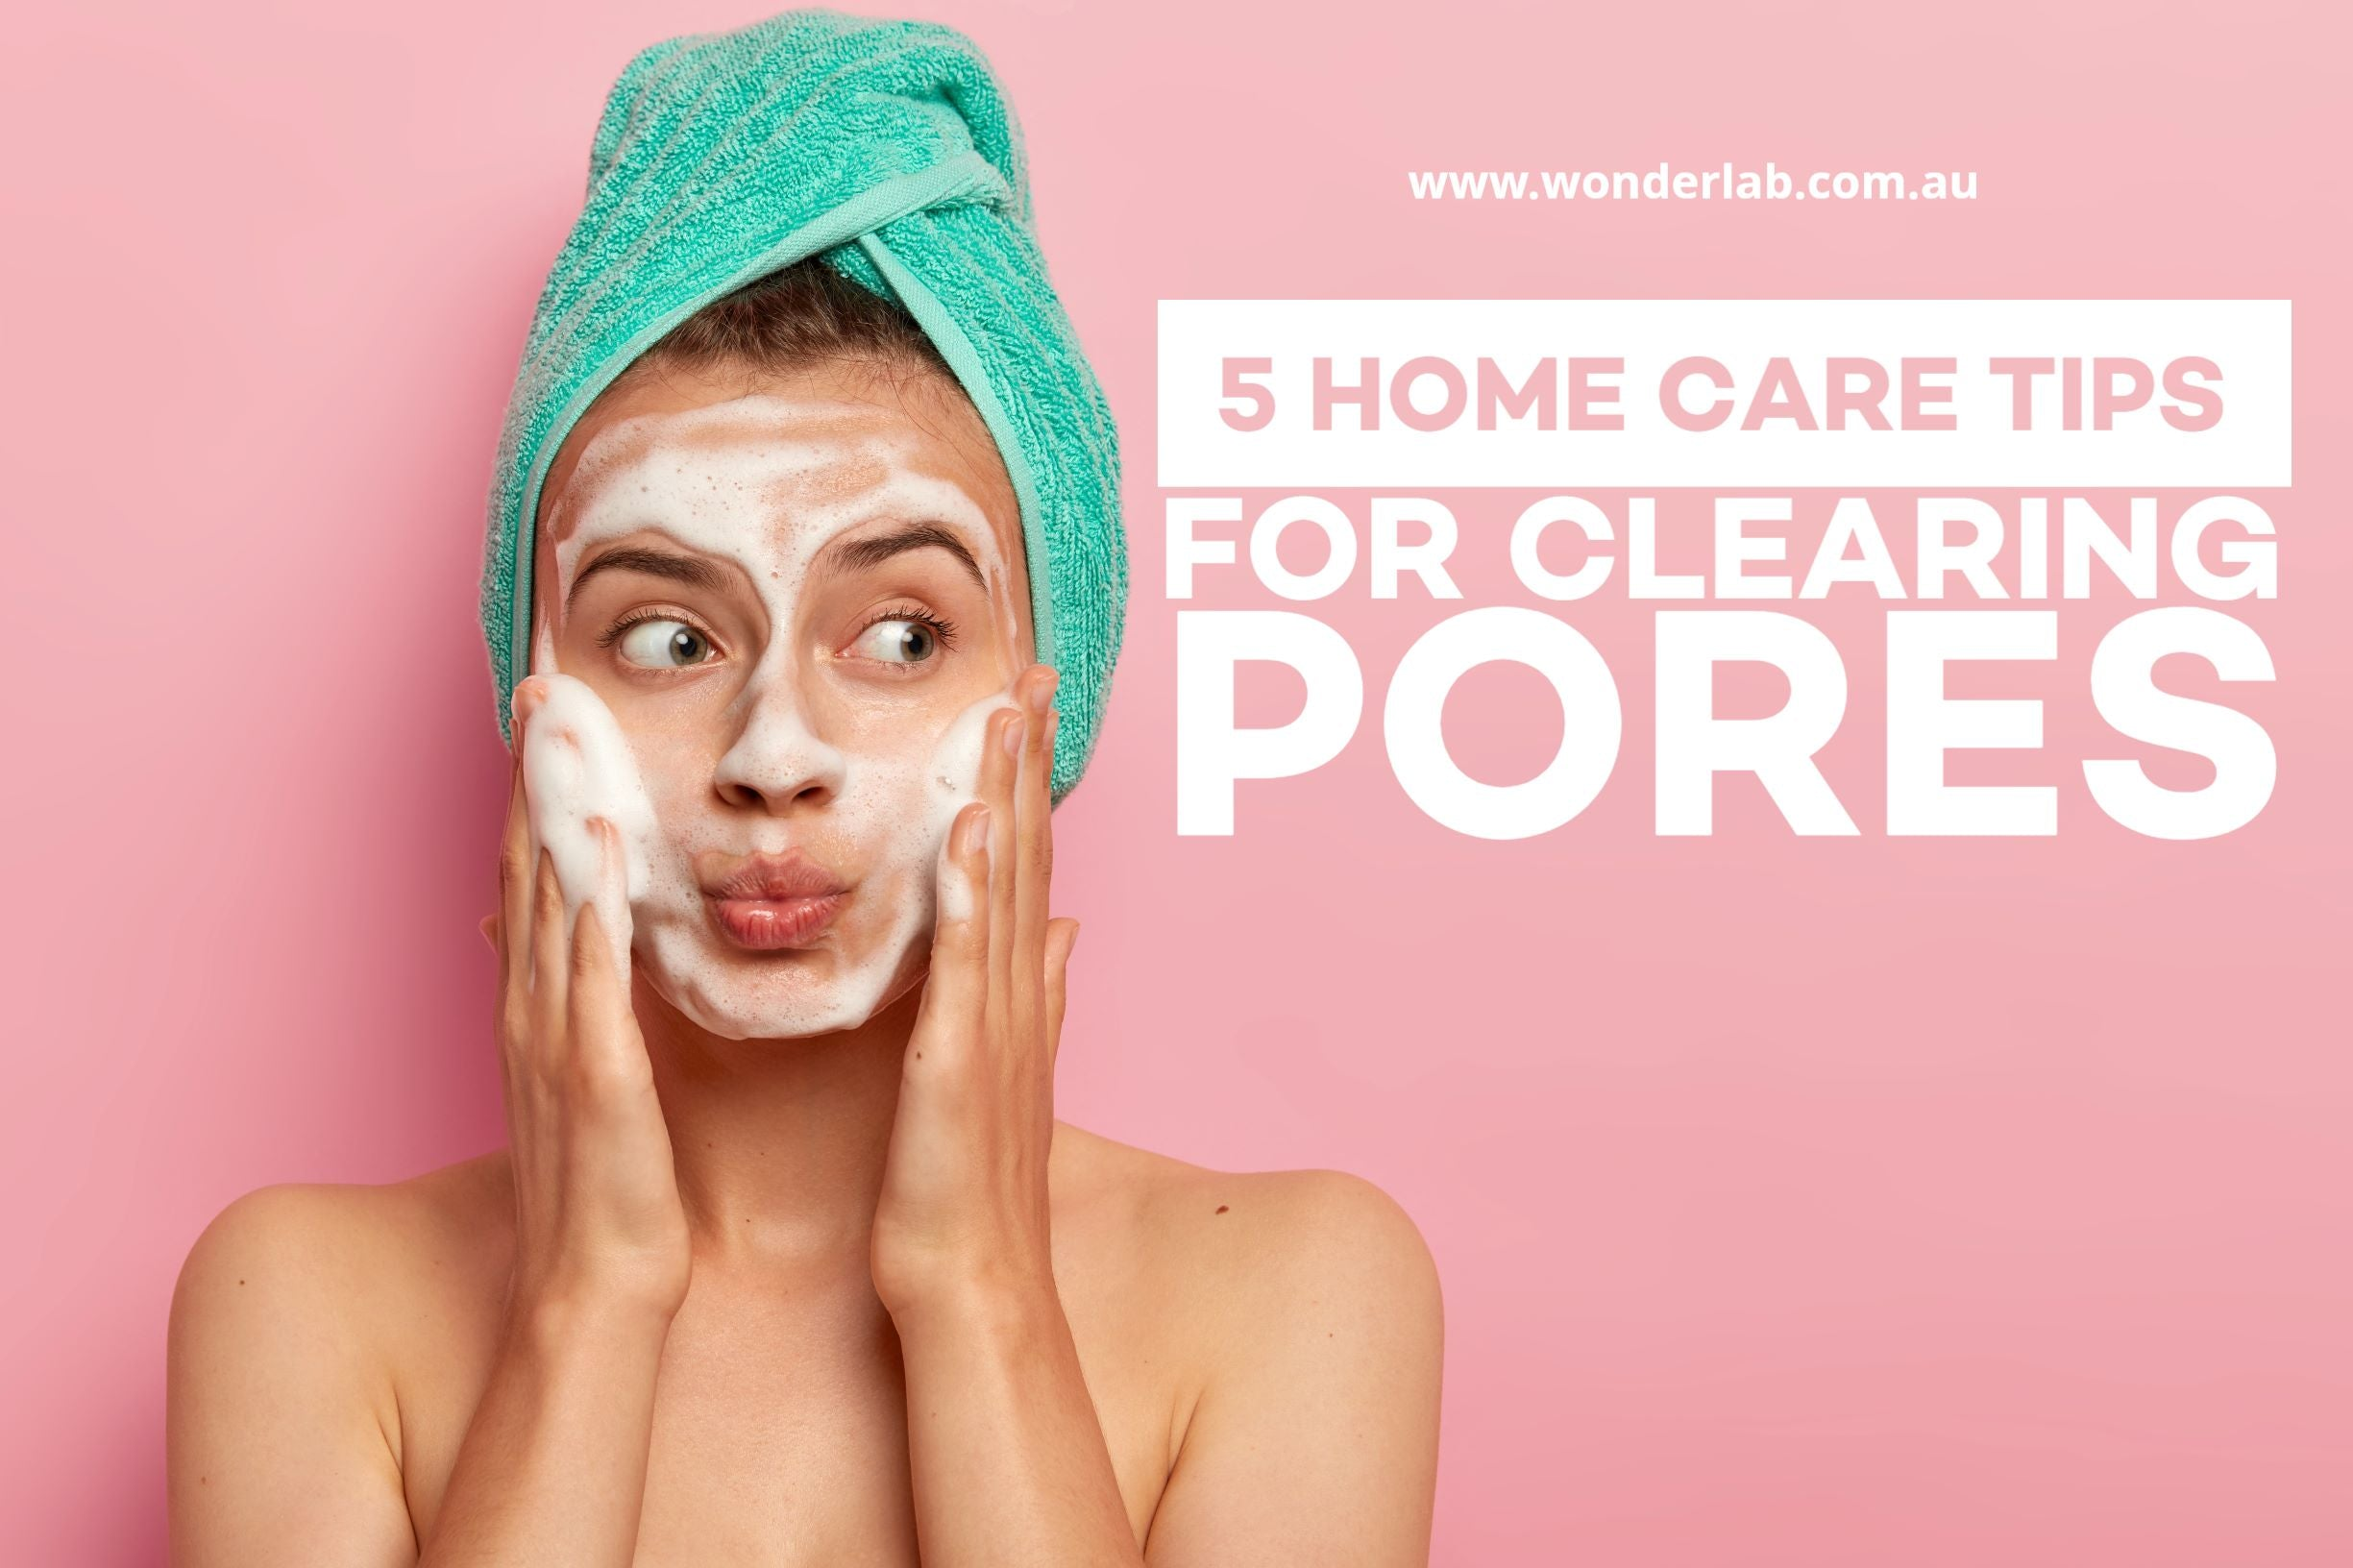 5 home care tips for clearing pores